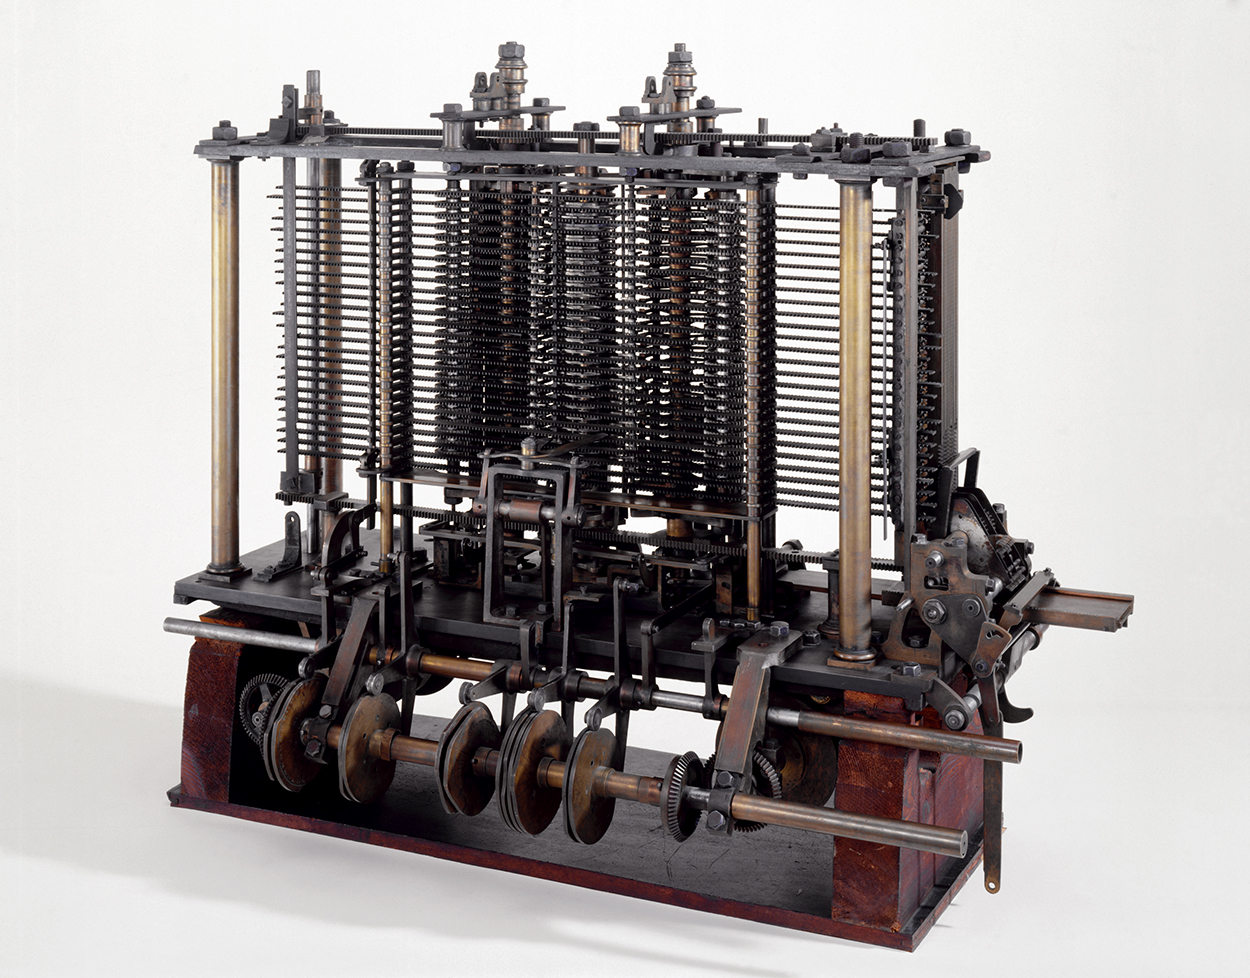 This was the first fully-automatic calculating machine. British computing pioneer Charles Babbage (1791-1871) first conceived the idea of an advanced calculating machine to calculate and print mathematical tables in 1812. This machine, conceived by Babbage in 1834, was designed to evaluate any mathematical formula and to have even higher powers of analysis than his original Difference engine of the 1820s. Only part of the machine was completed before his death in 1871. This is a portion of the mill with a printing mechanism. Babbage was also a reformer, mathematician, philosopher, inventor and political economist.